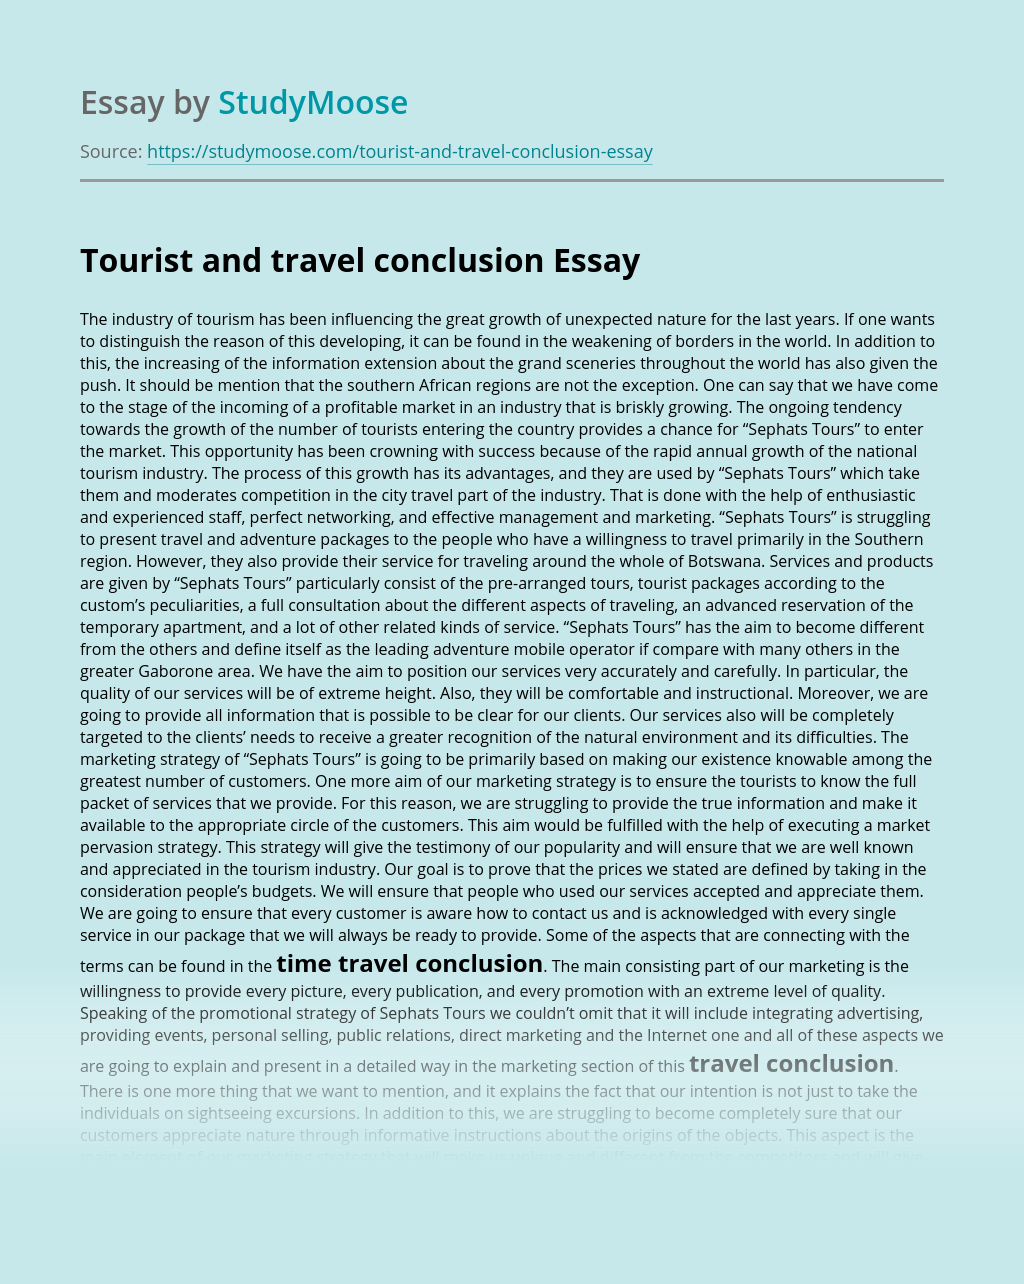 Tourist and travel conclusion